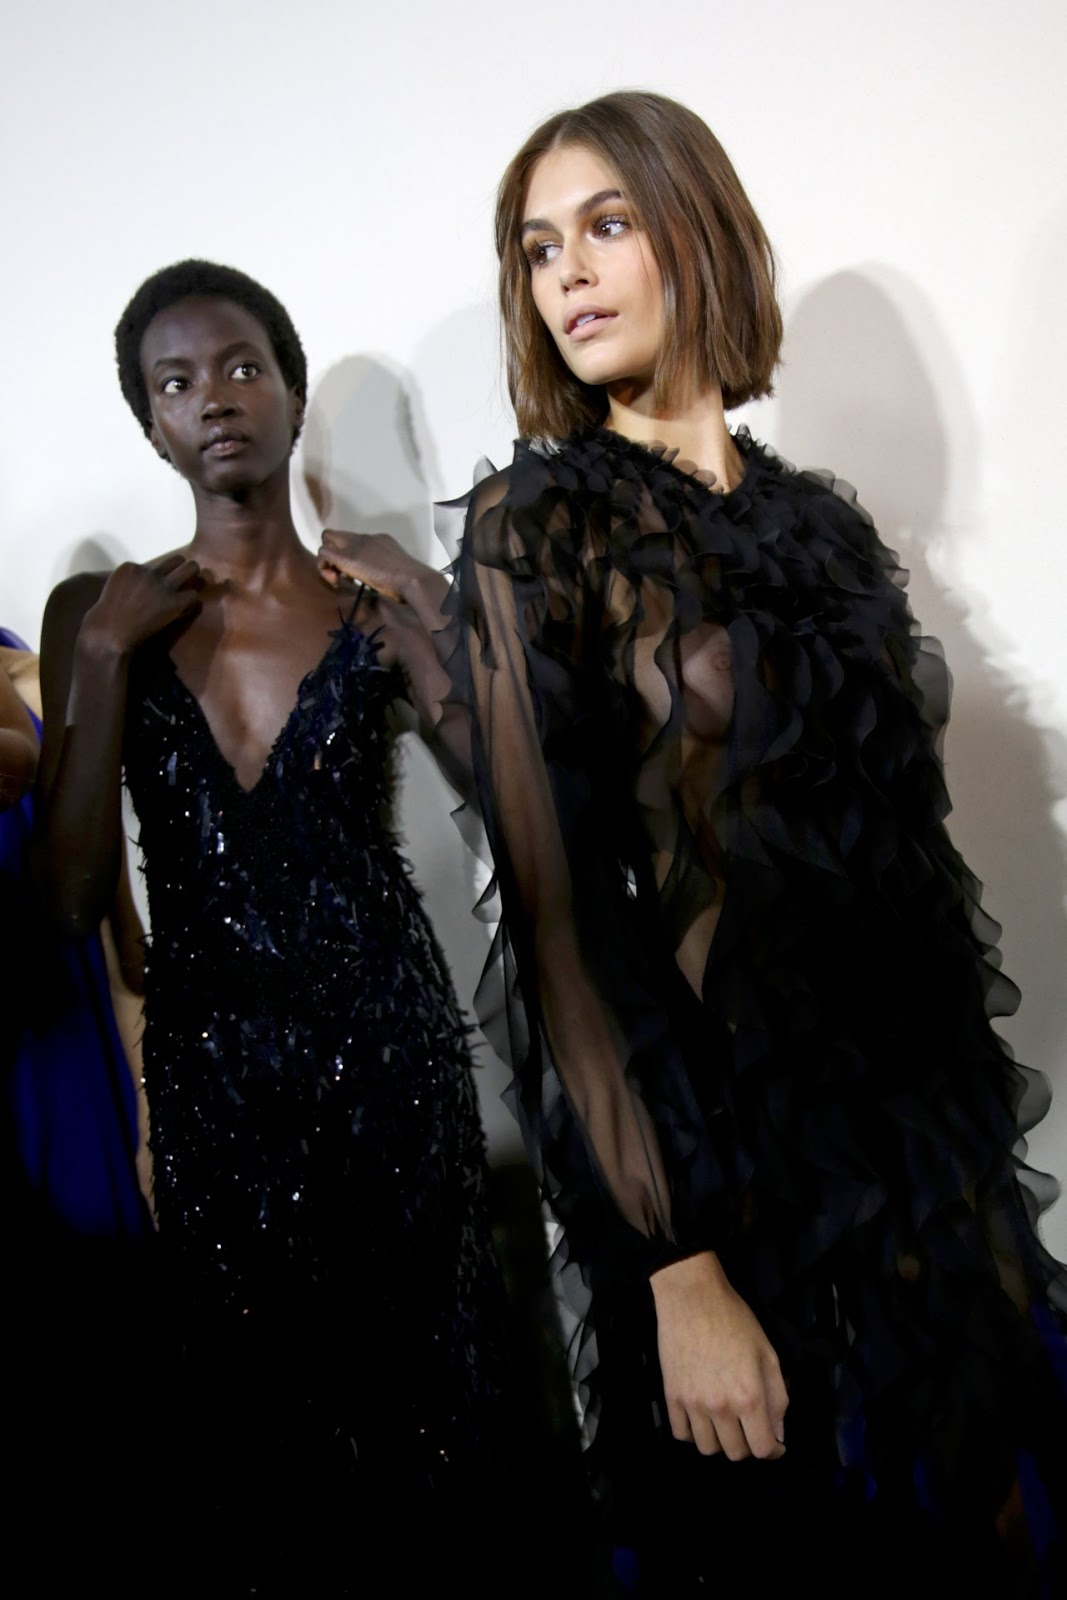 Kaia Gerber shows nipples doing catwalk at Alberta Ferretti fashion show